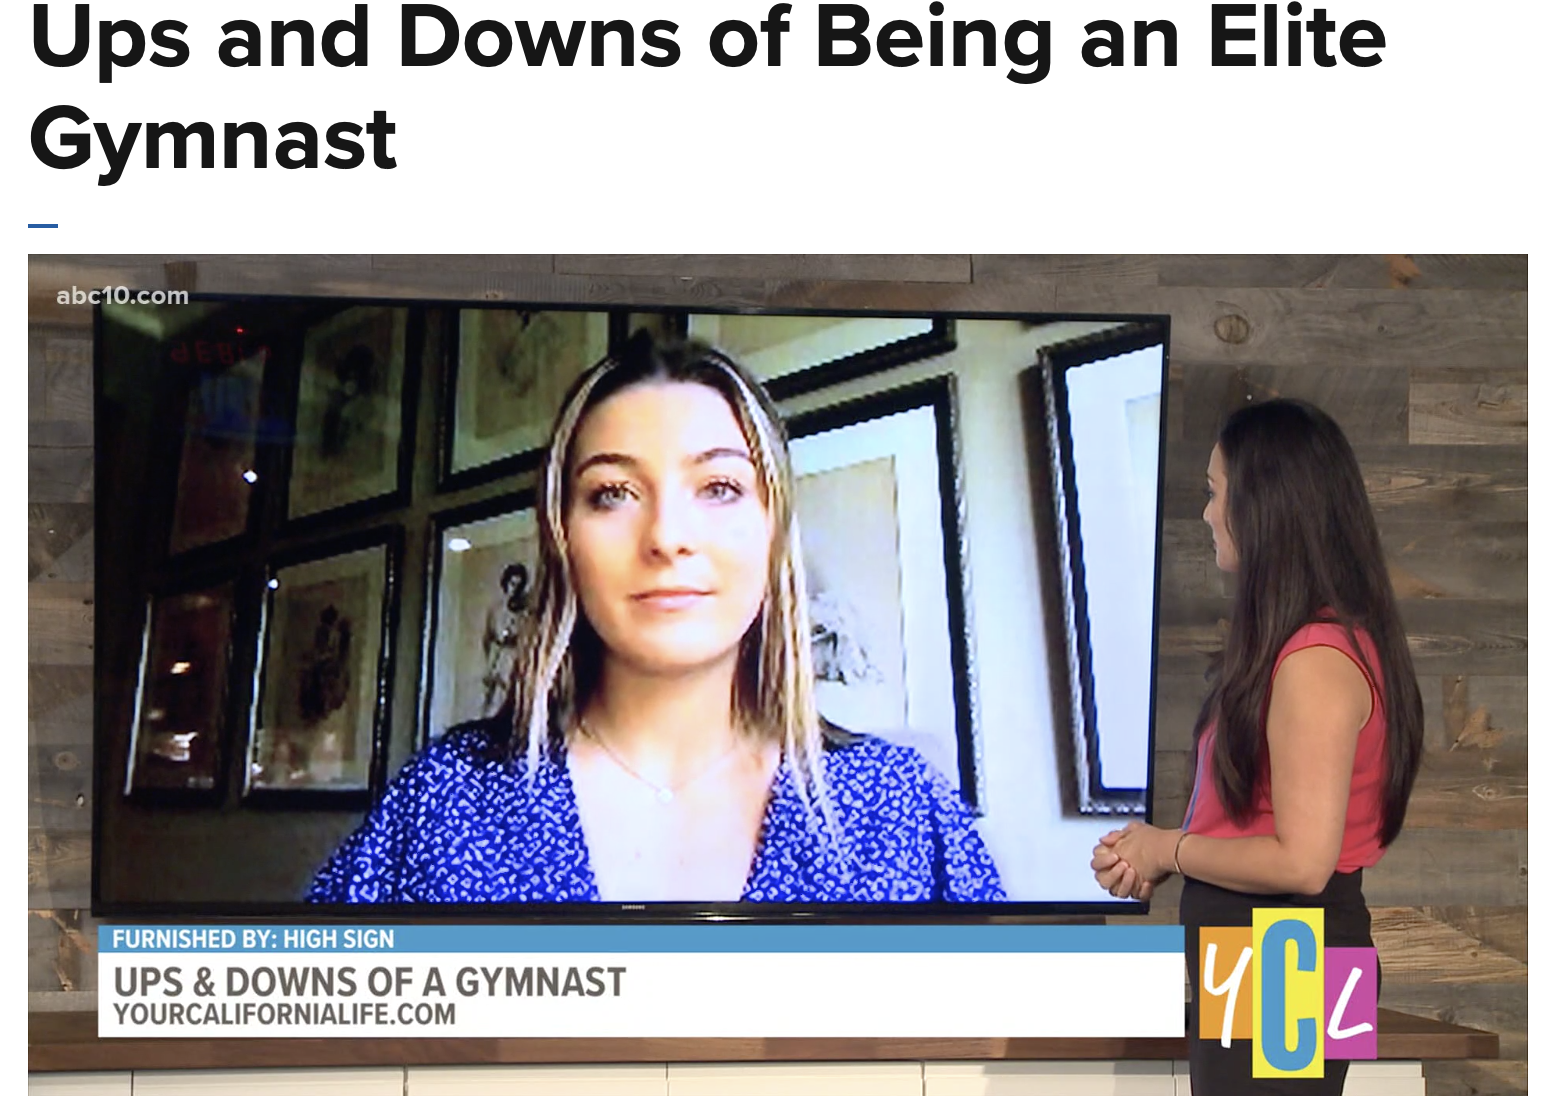 Ups and Downs of Being an Elite Gymnast